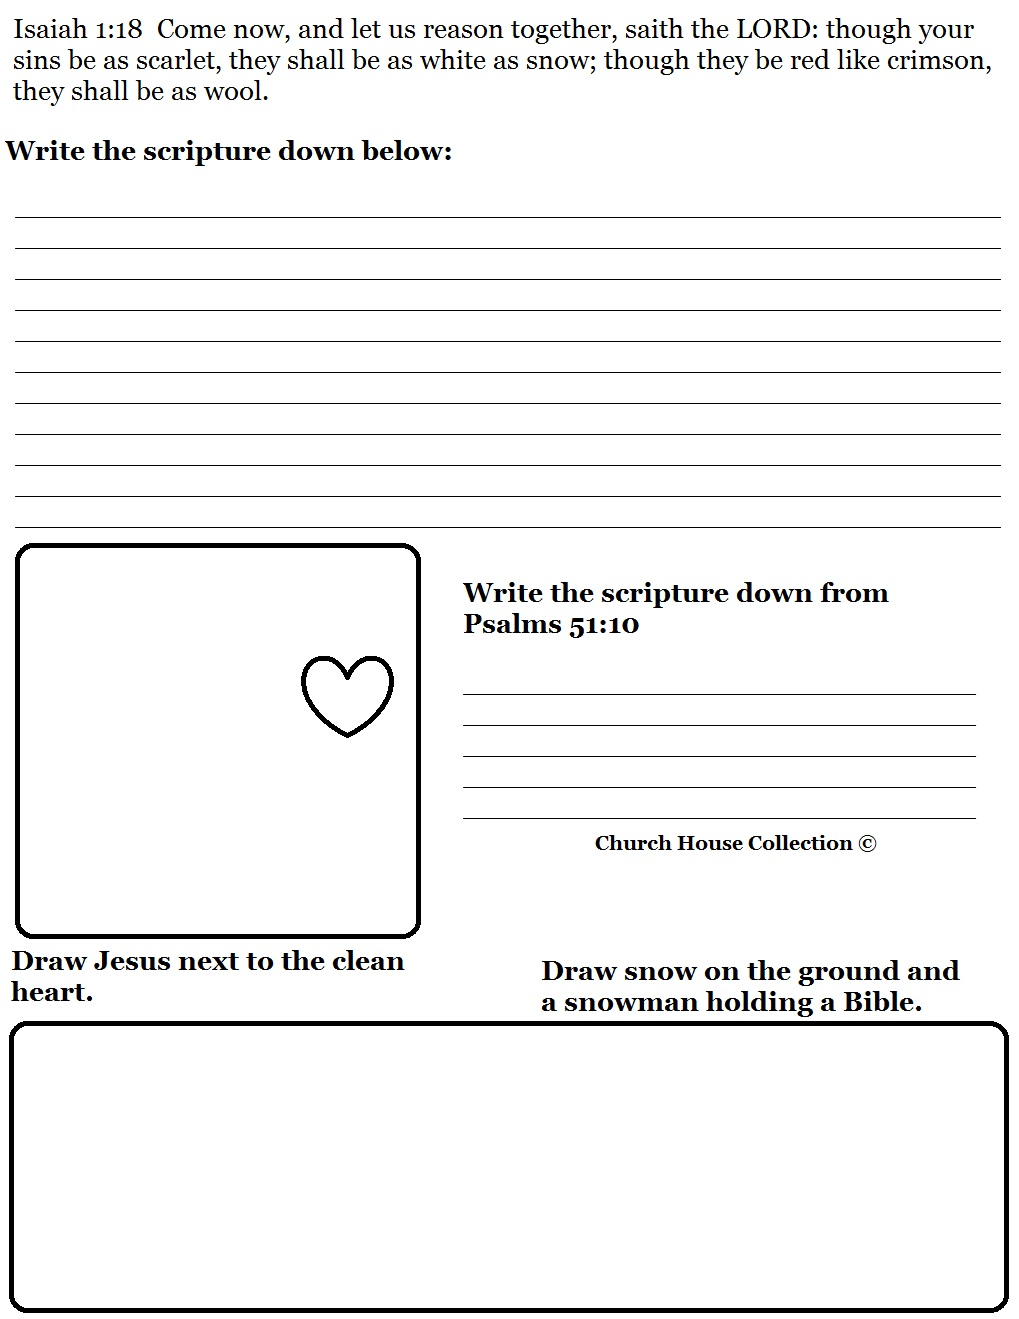 image regarding Sunday School Printable Worksheets referred to as Snowman Sunday College or university Lesson